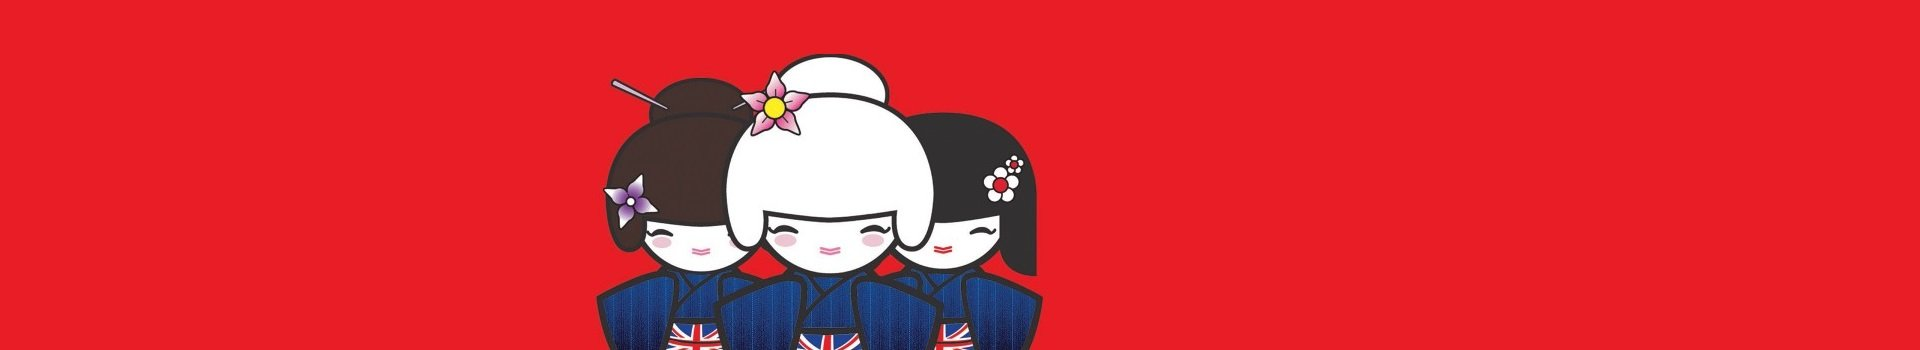 The Mikado banner image